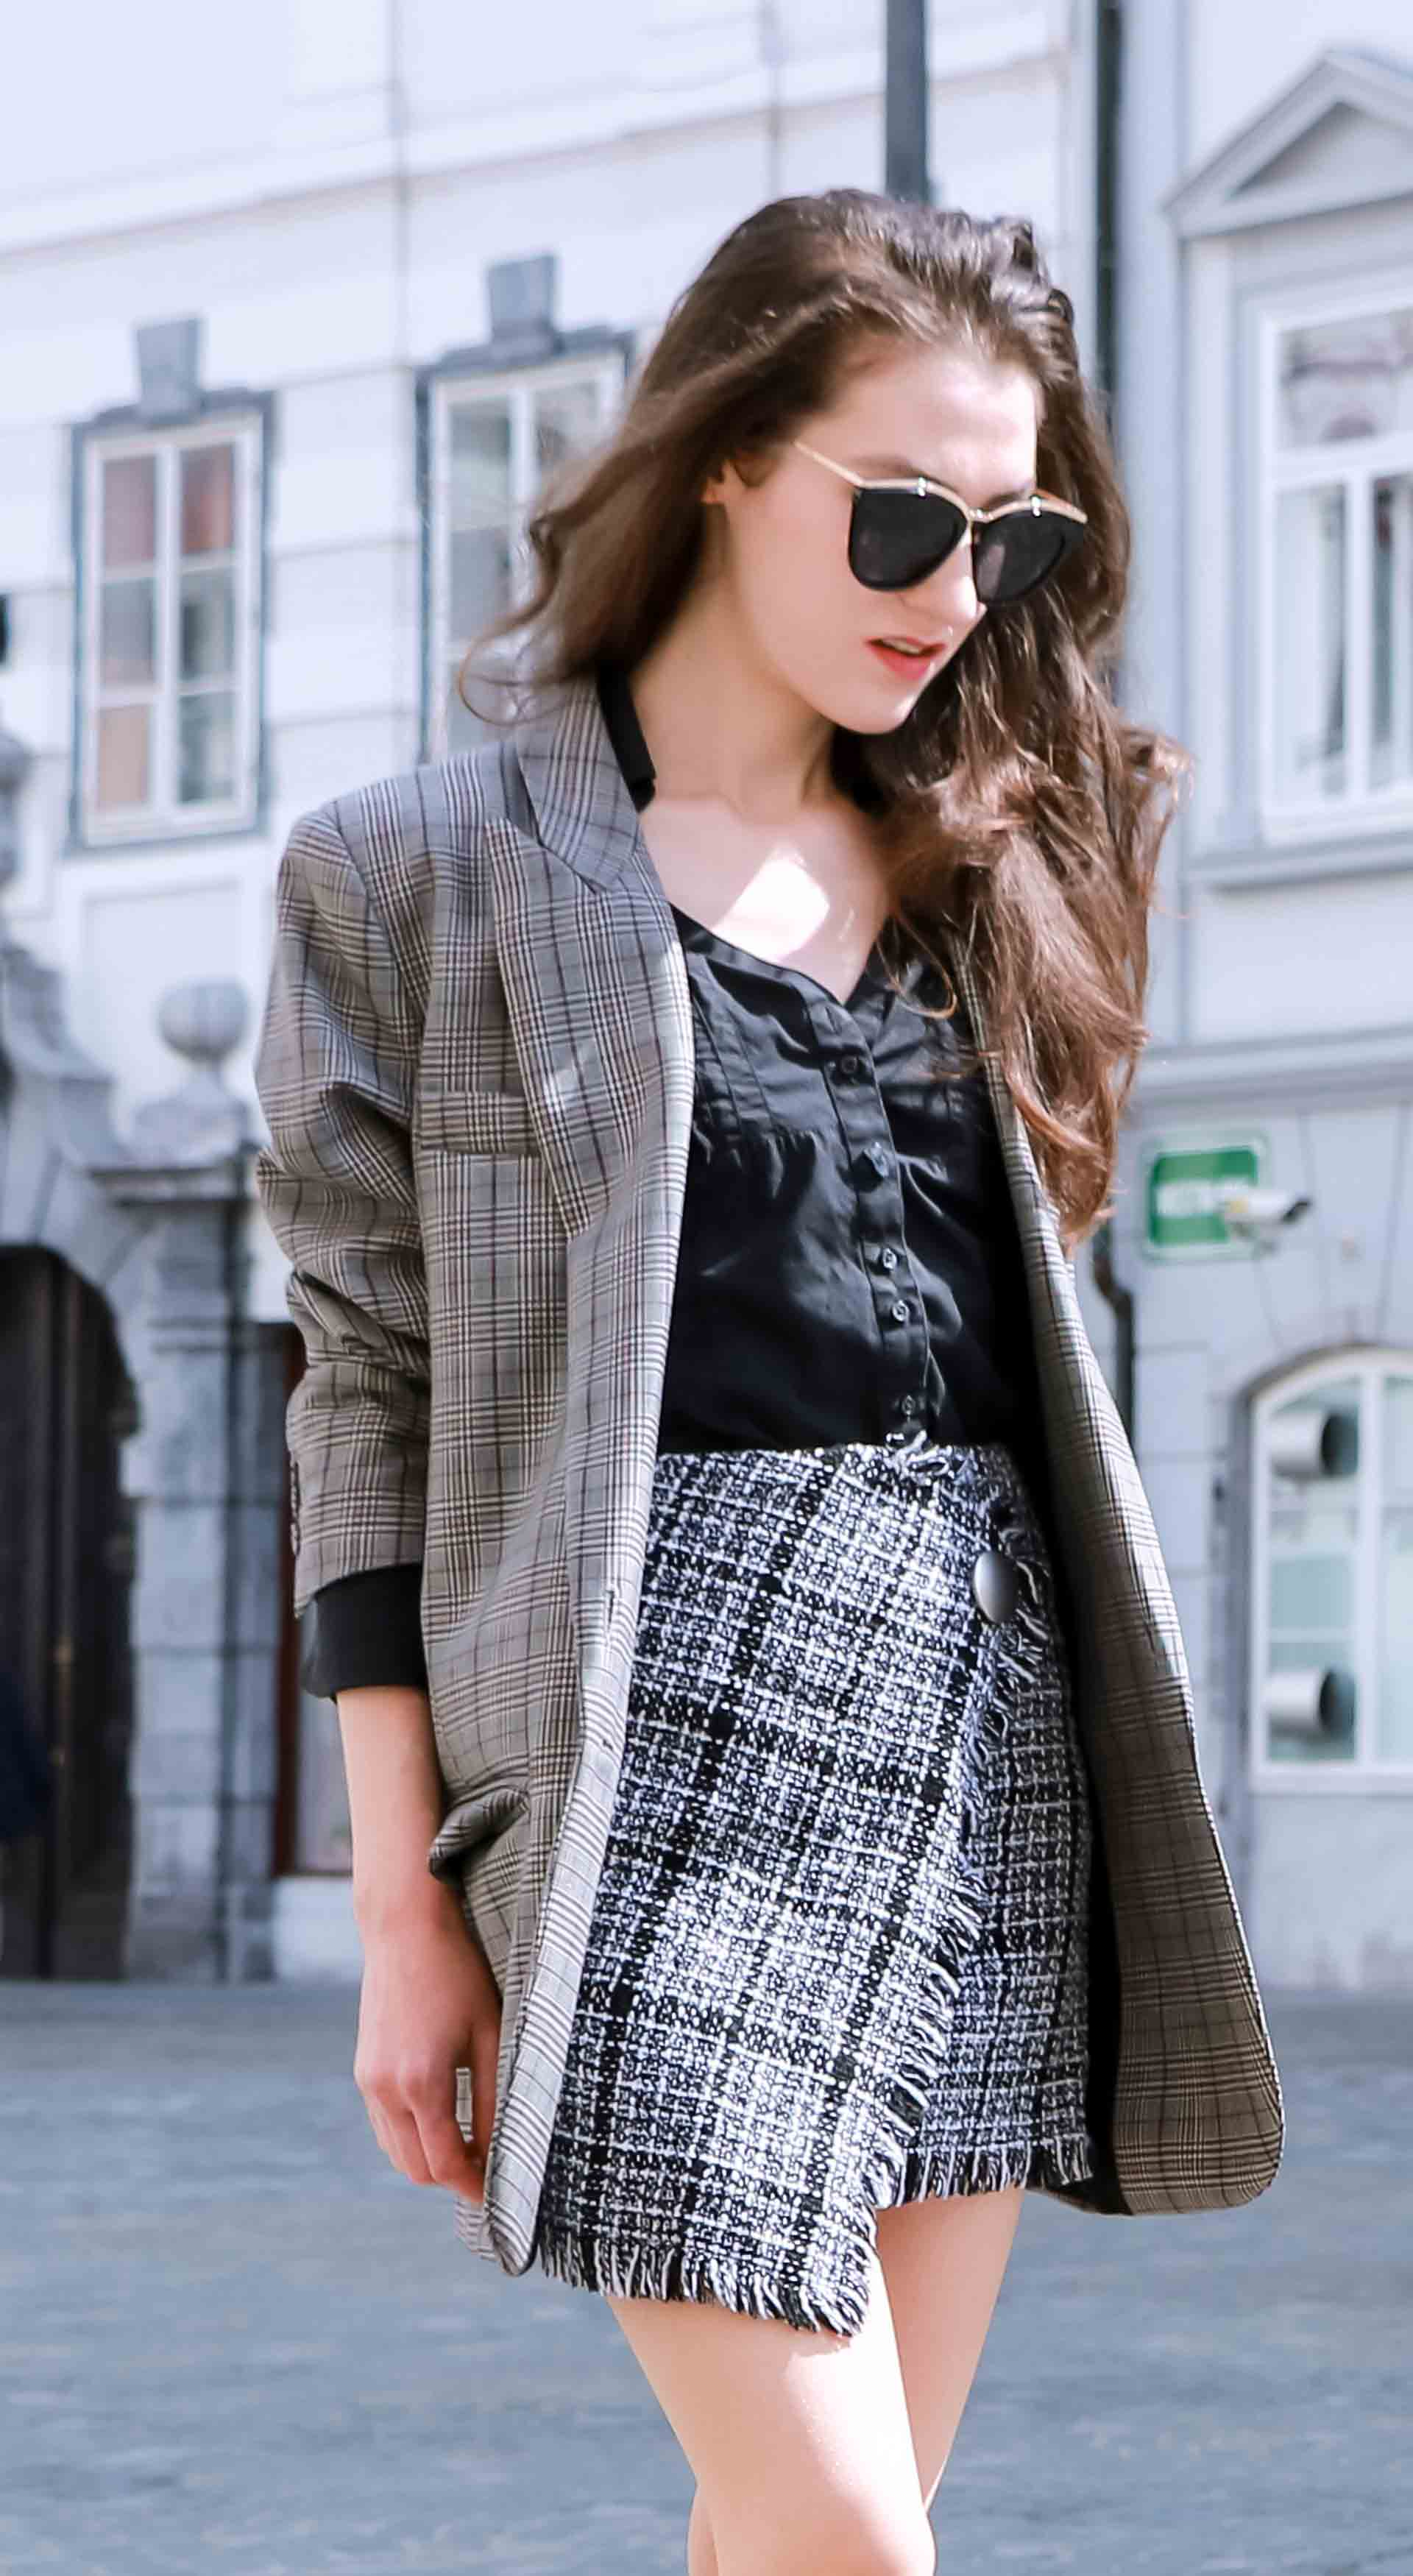 Fashion Blogger Veronika Lipar of Brunette from Wall Street wearing Erika Cavallini oversized boyfriend plaid blazer with short tweed black and white mini skirt from streets, and white chain strap shoulder bag while on the street in Ljubljana